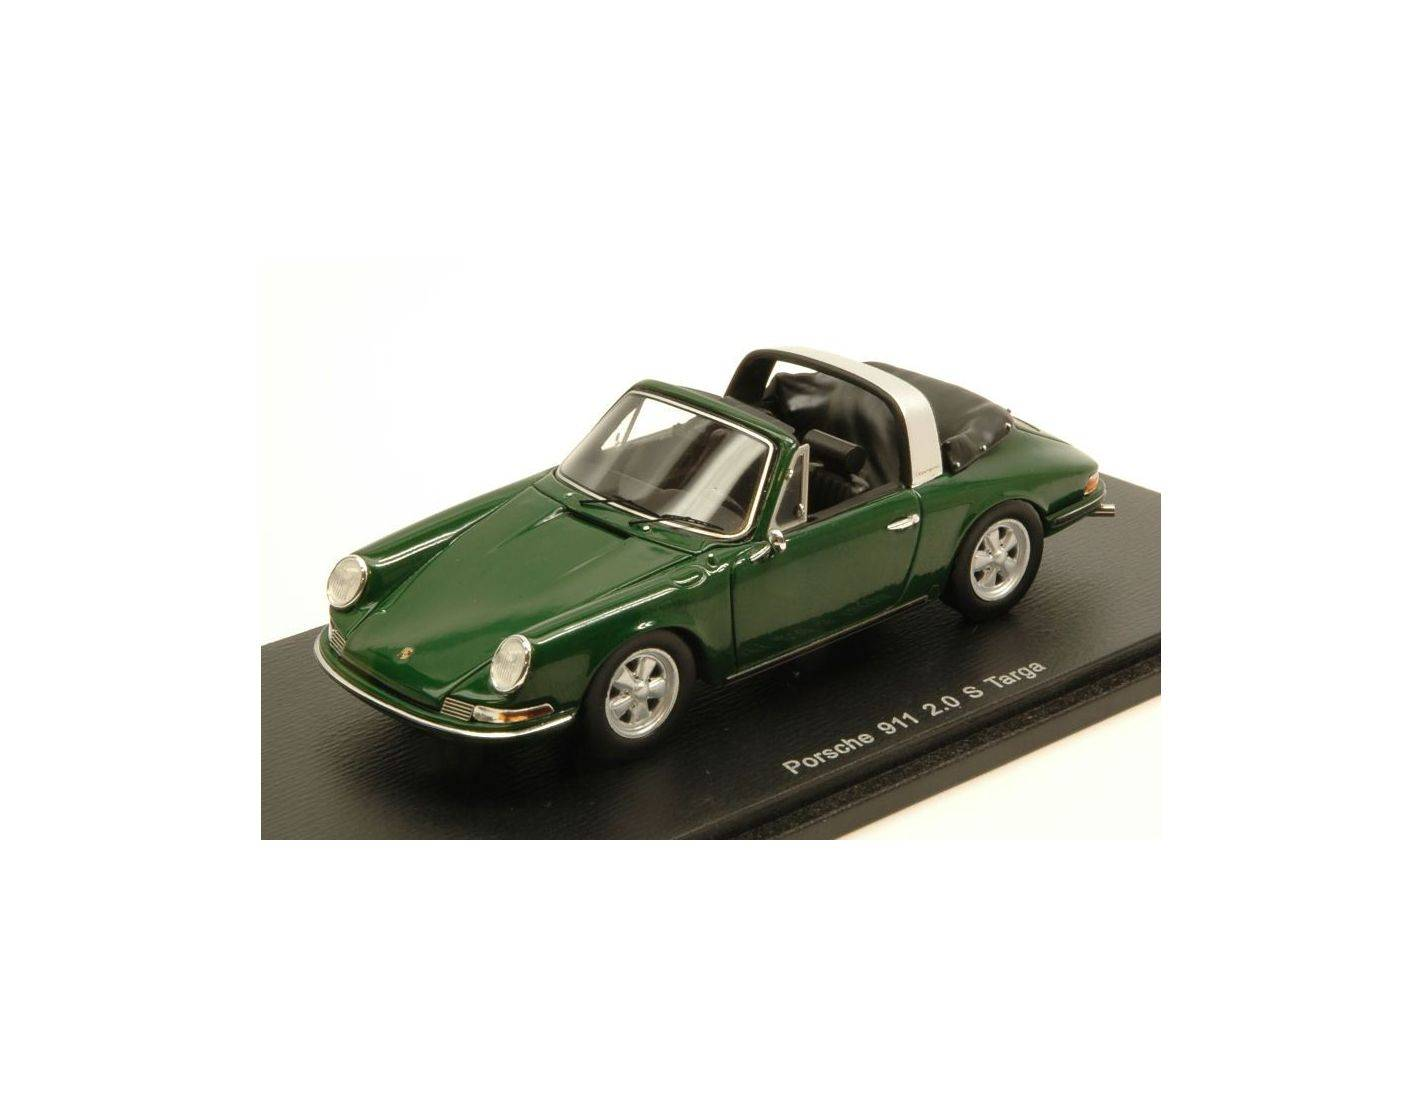 3ce2bf38c7e2e4 Dark Green Porsche 911 Targa Related Keywords   Suggestions - Dark ...